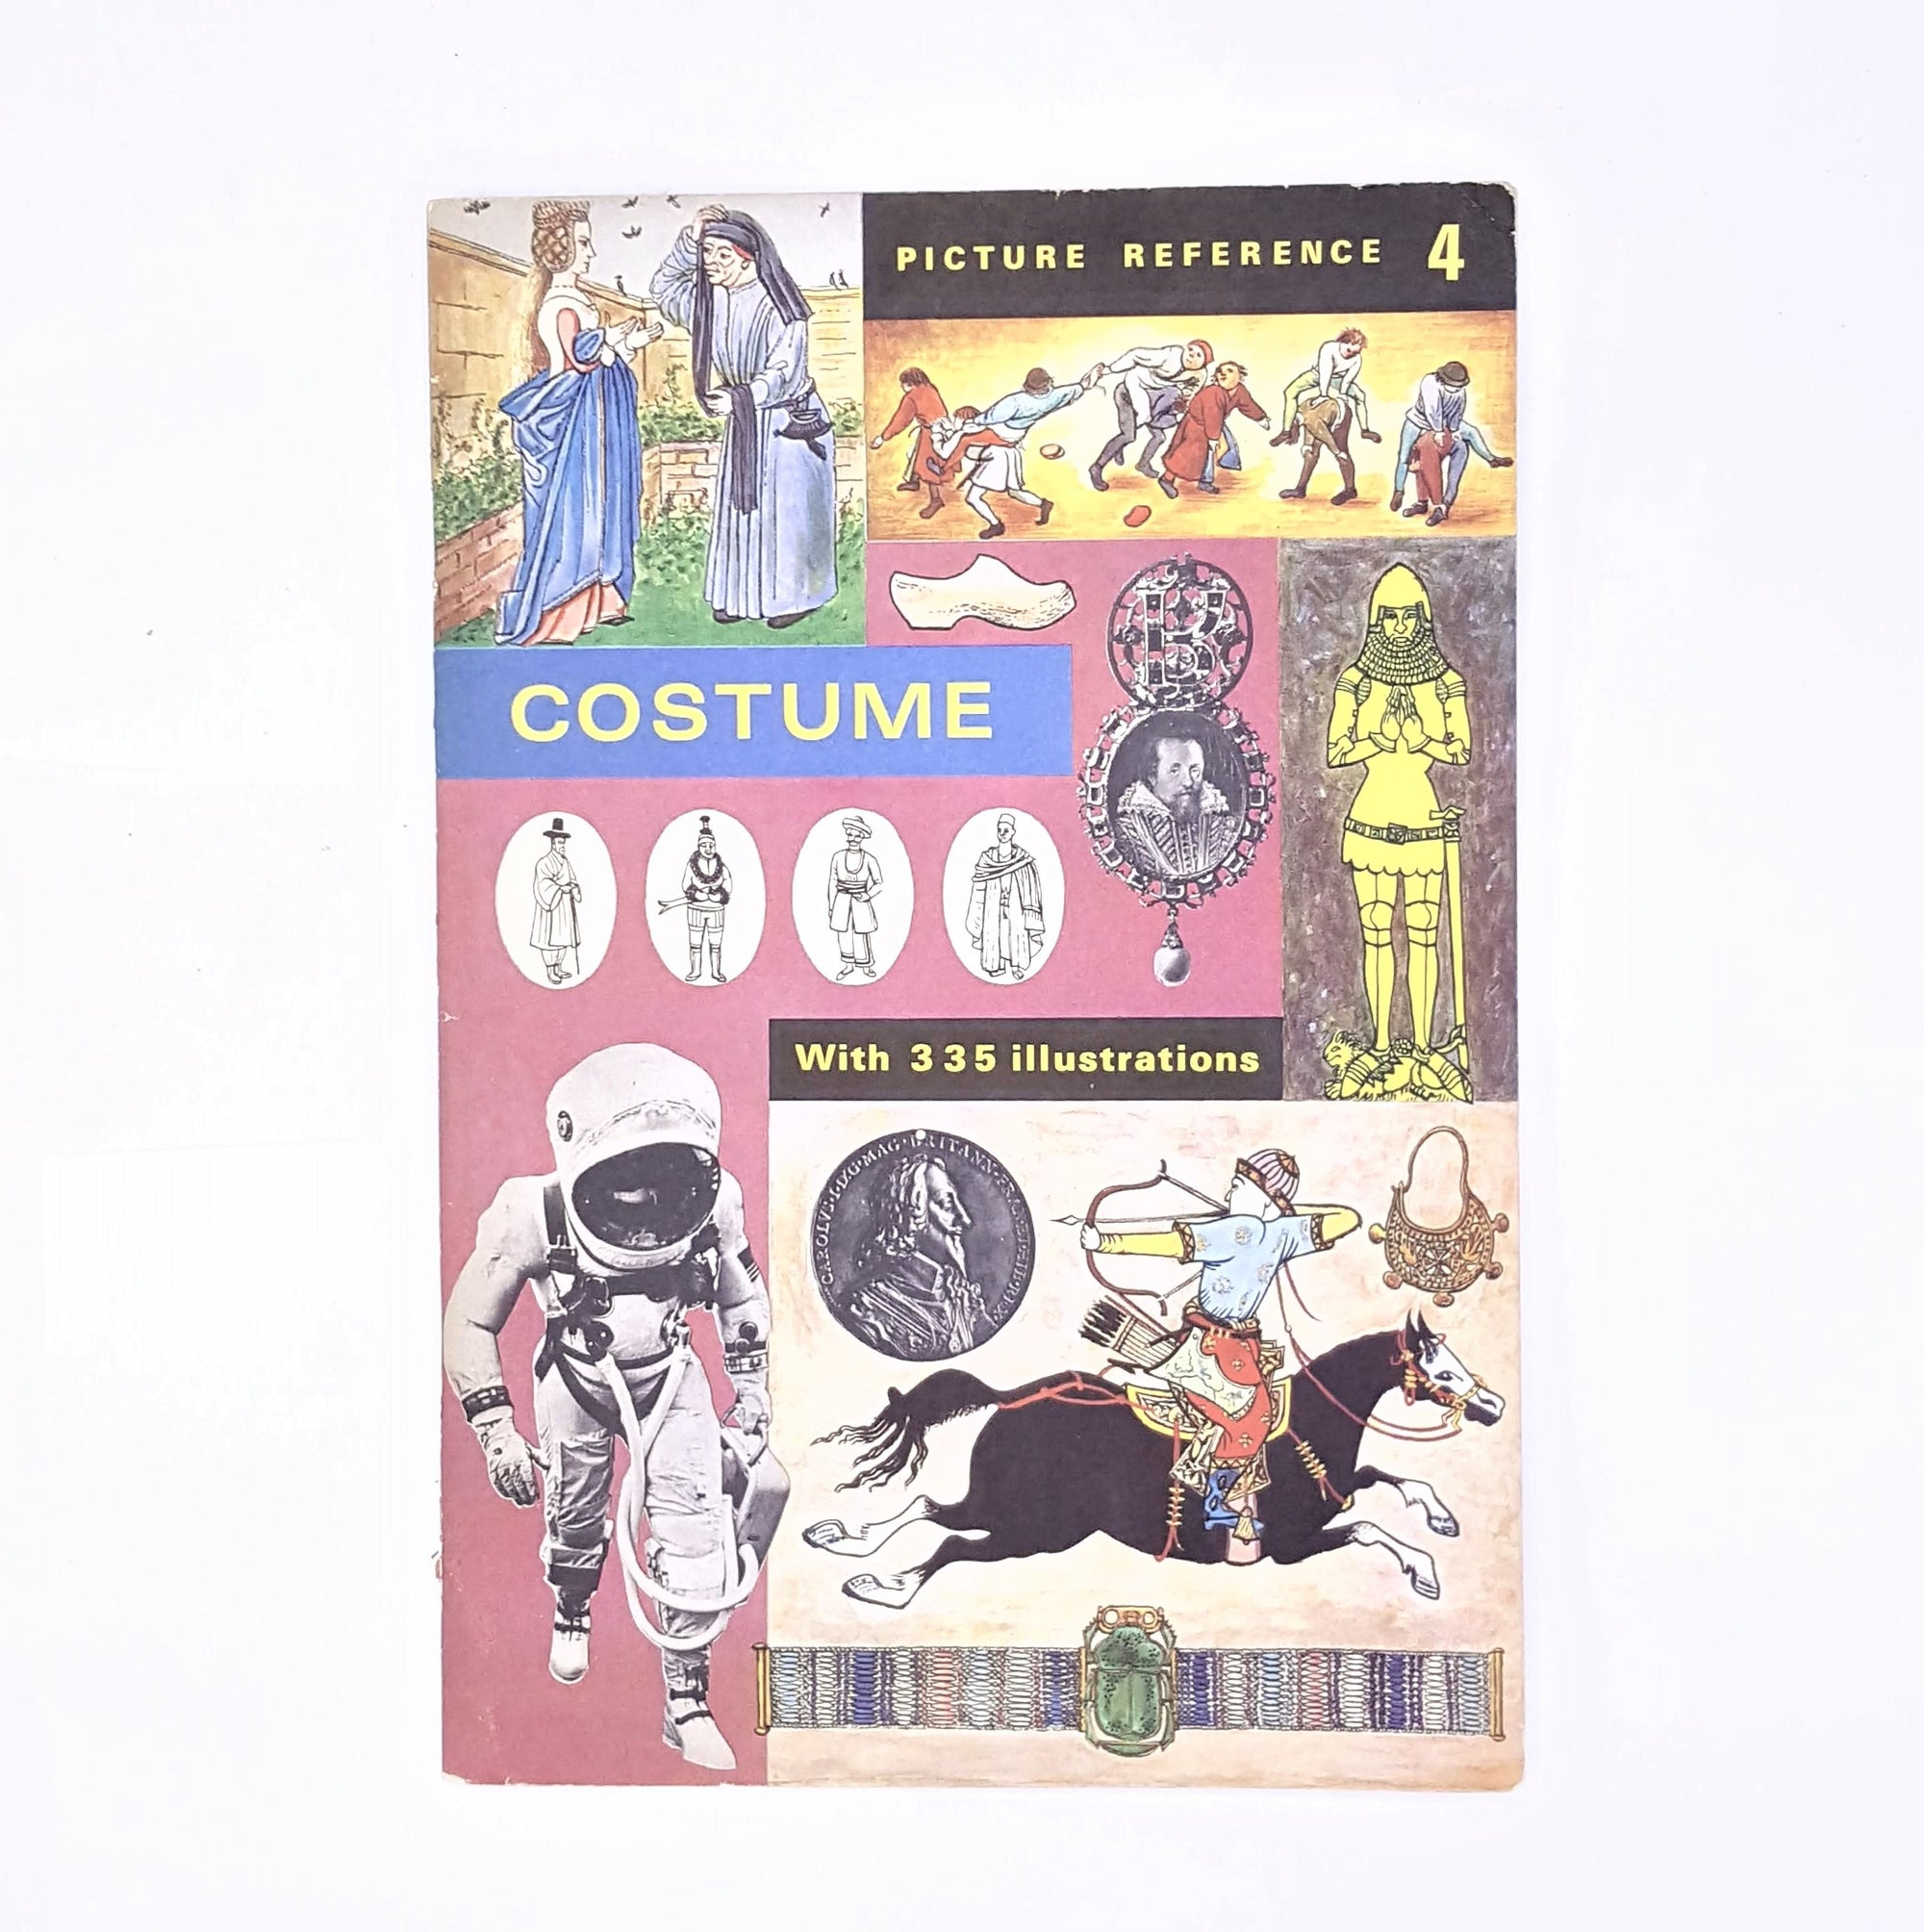 Picture Reference 4 - Costume 1973